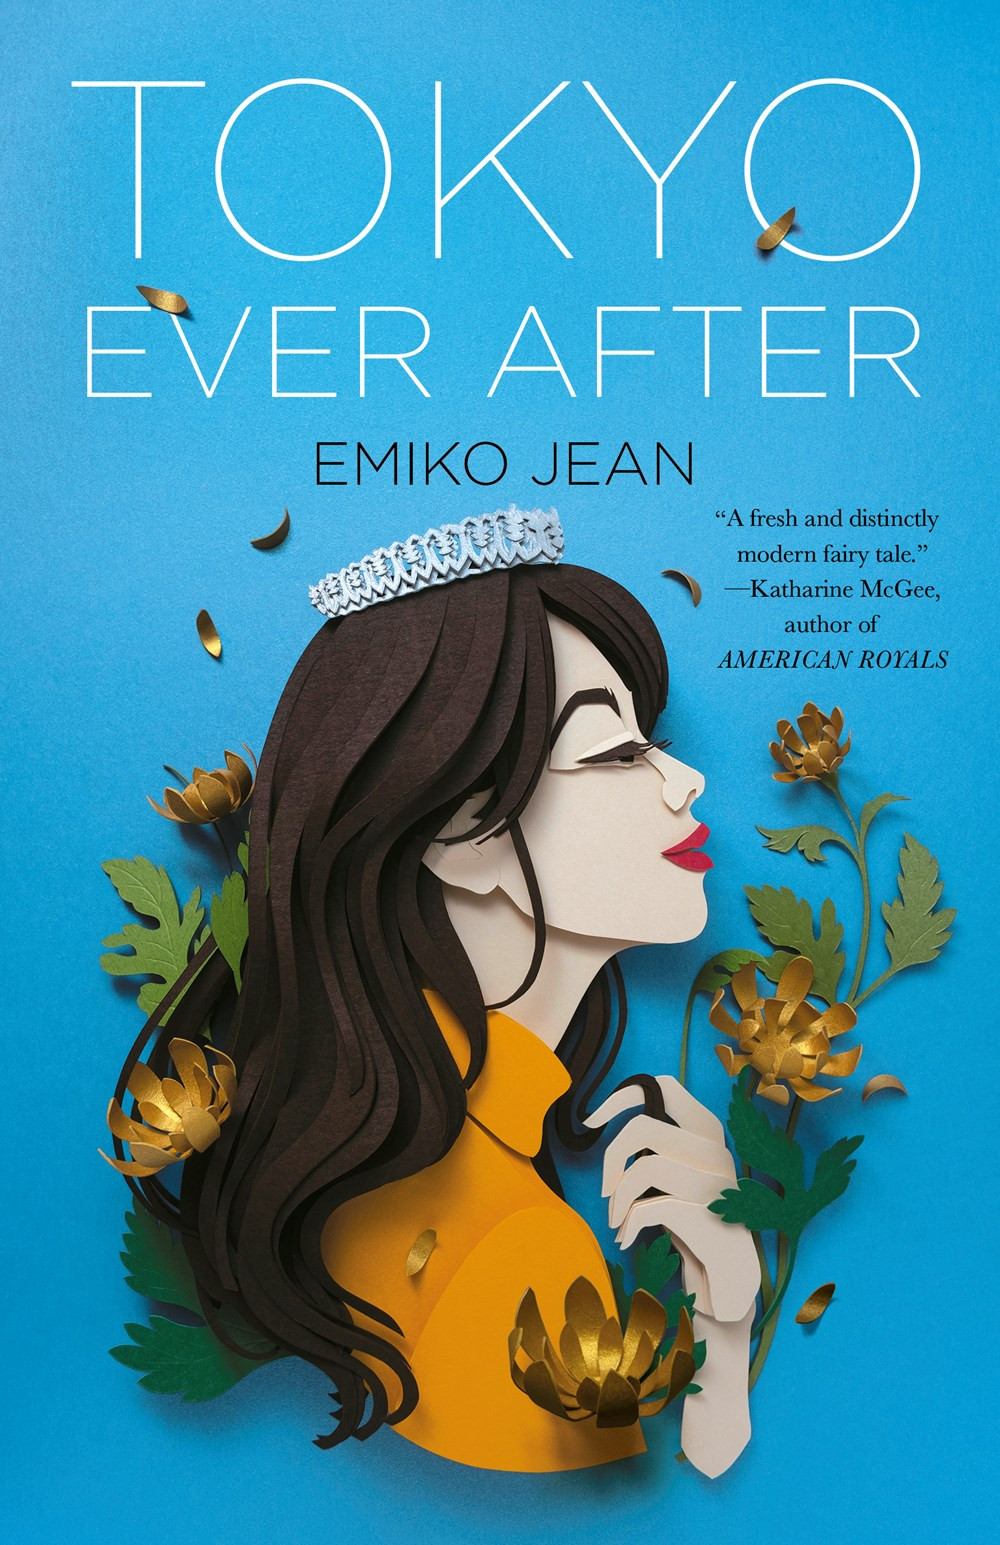 Book cover of Emiko Jean's Tokyo Ever After